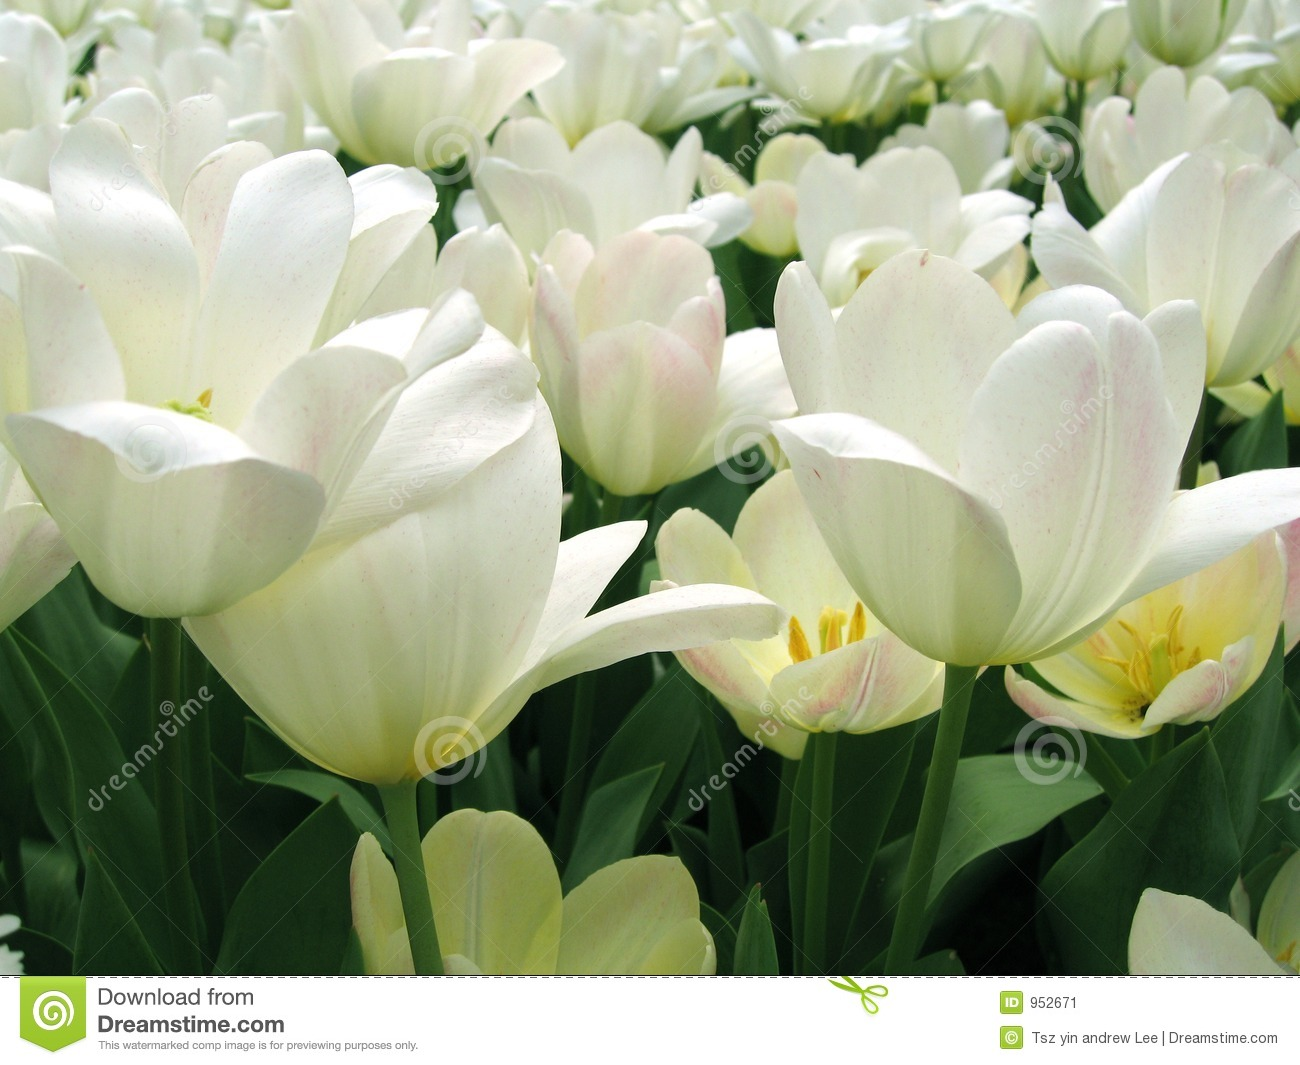 White pure flowers stock image image of flower smell 952671 white pure flowers mightylinksfo